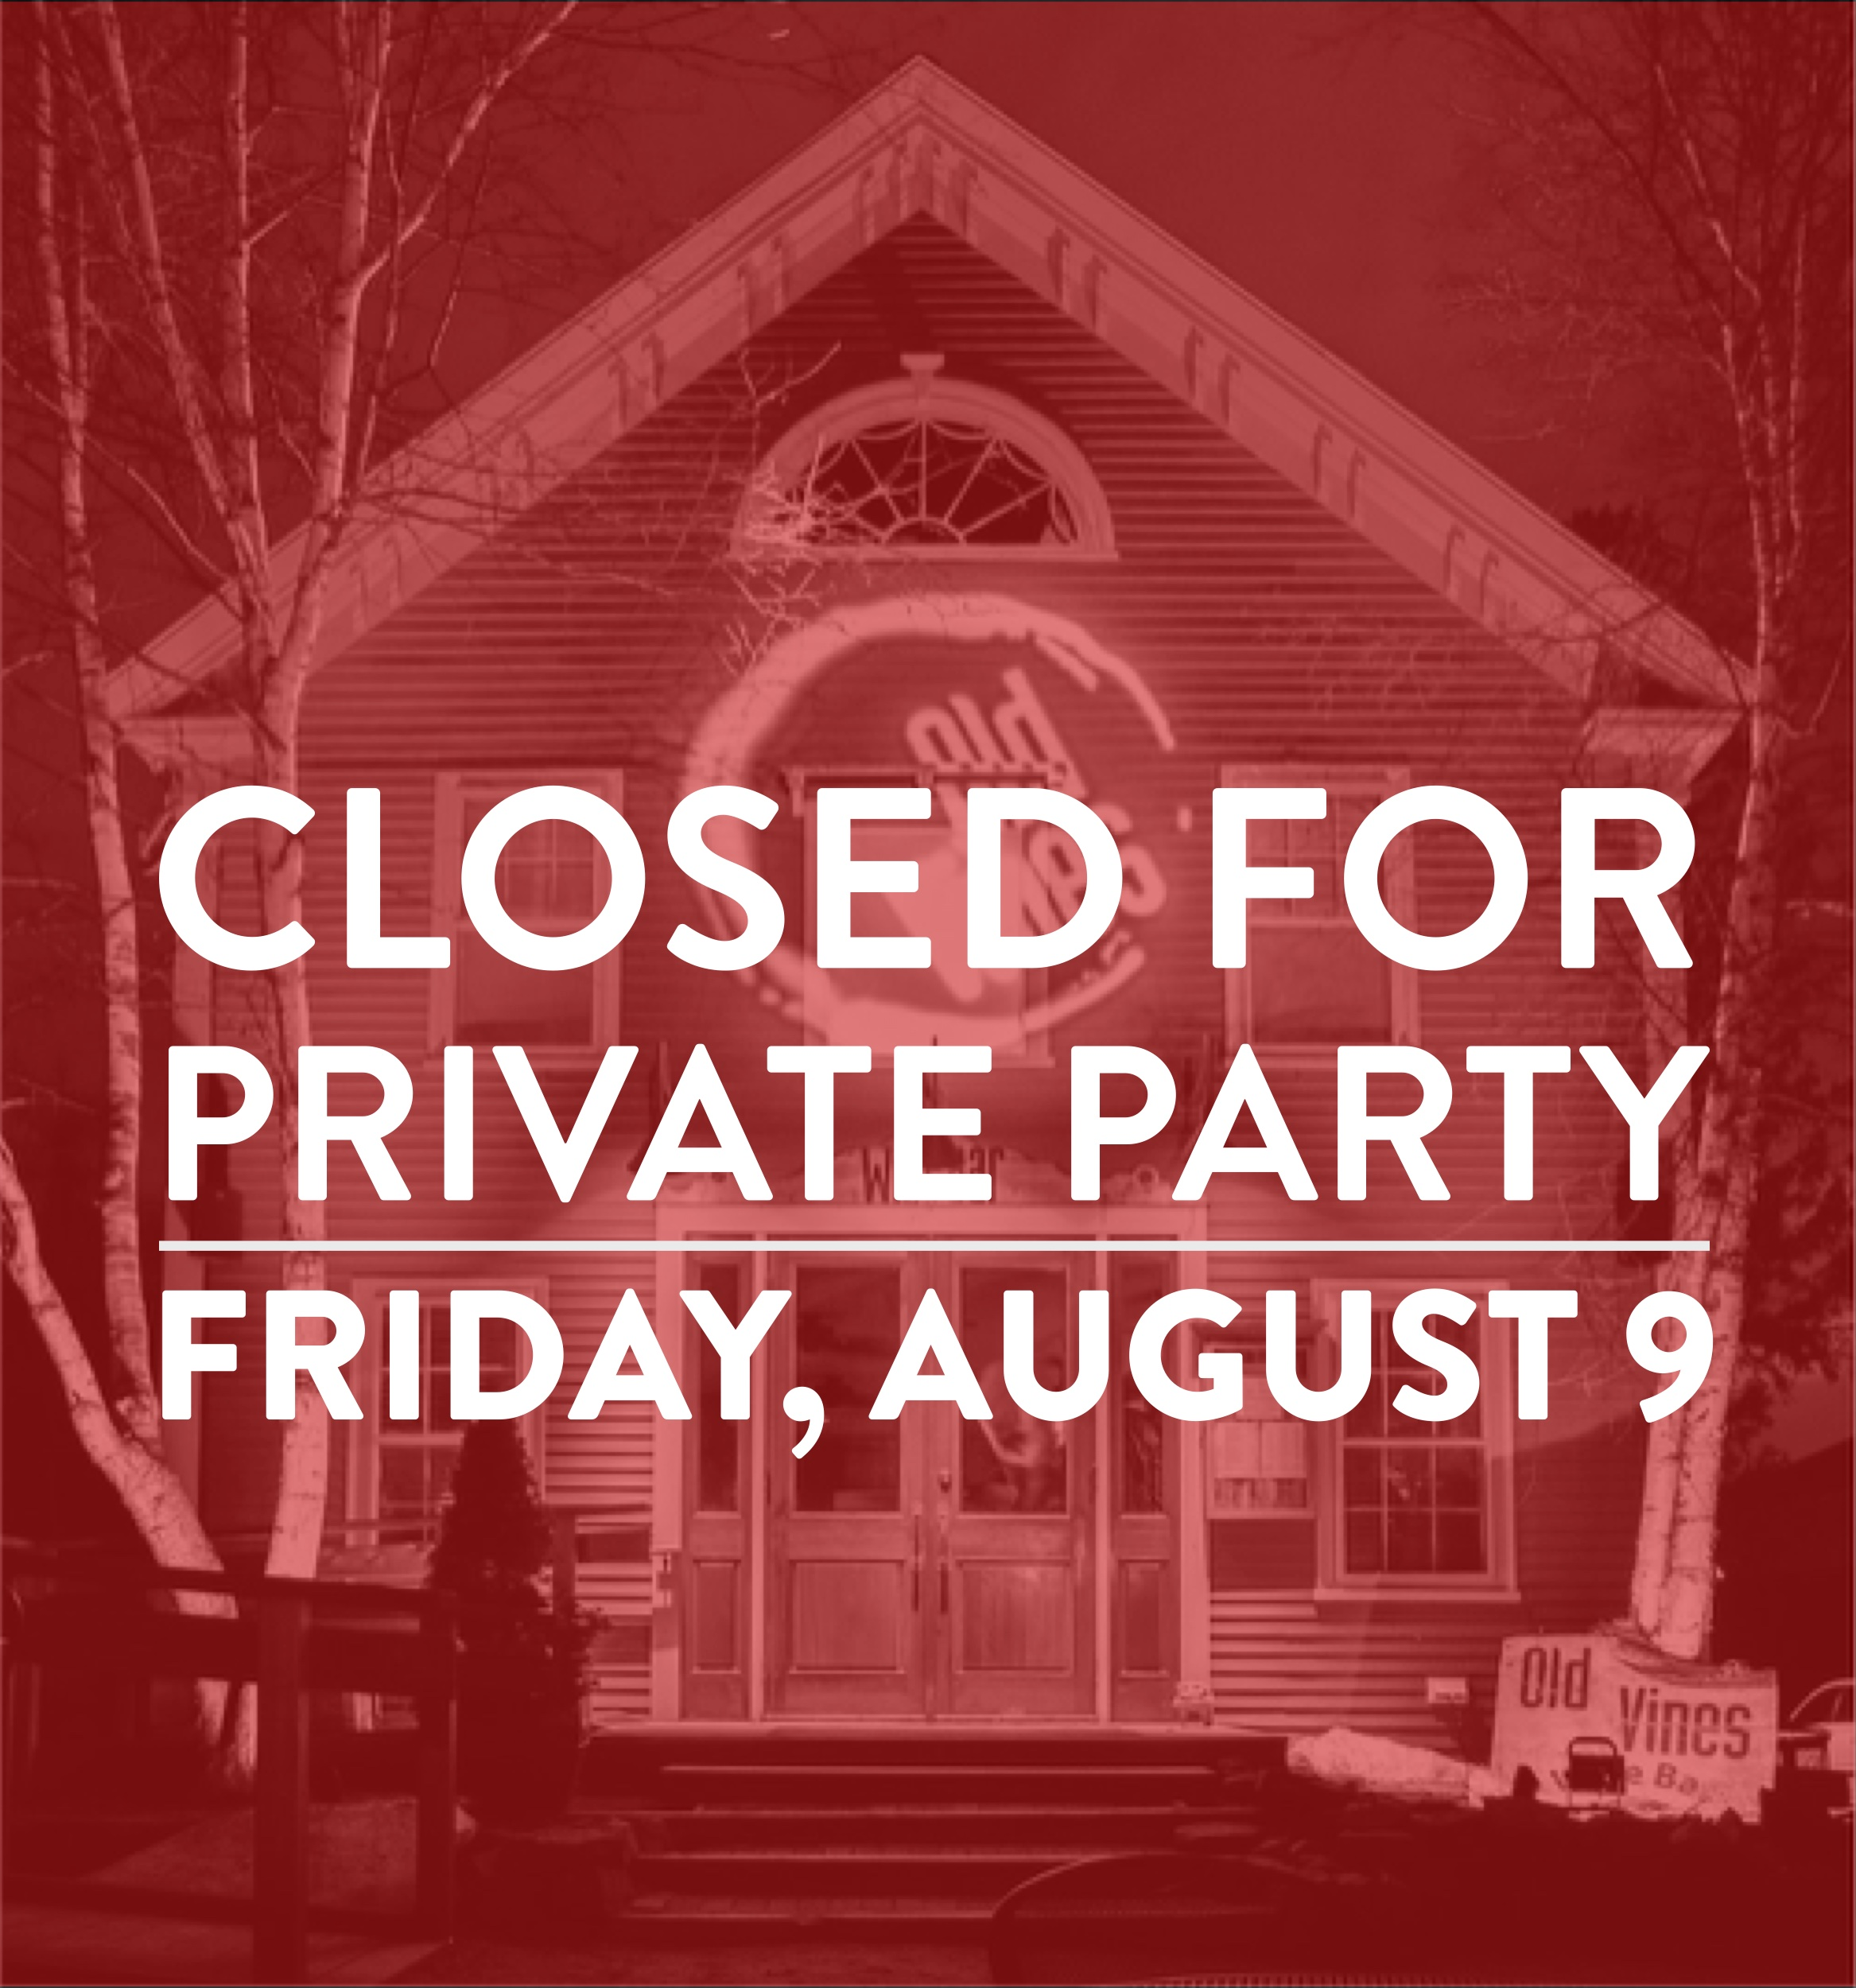 2017 closed for private party aug 9.jpg